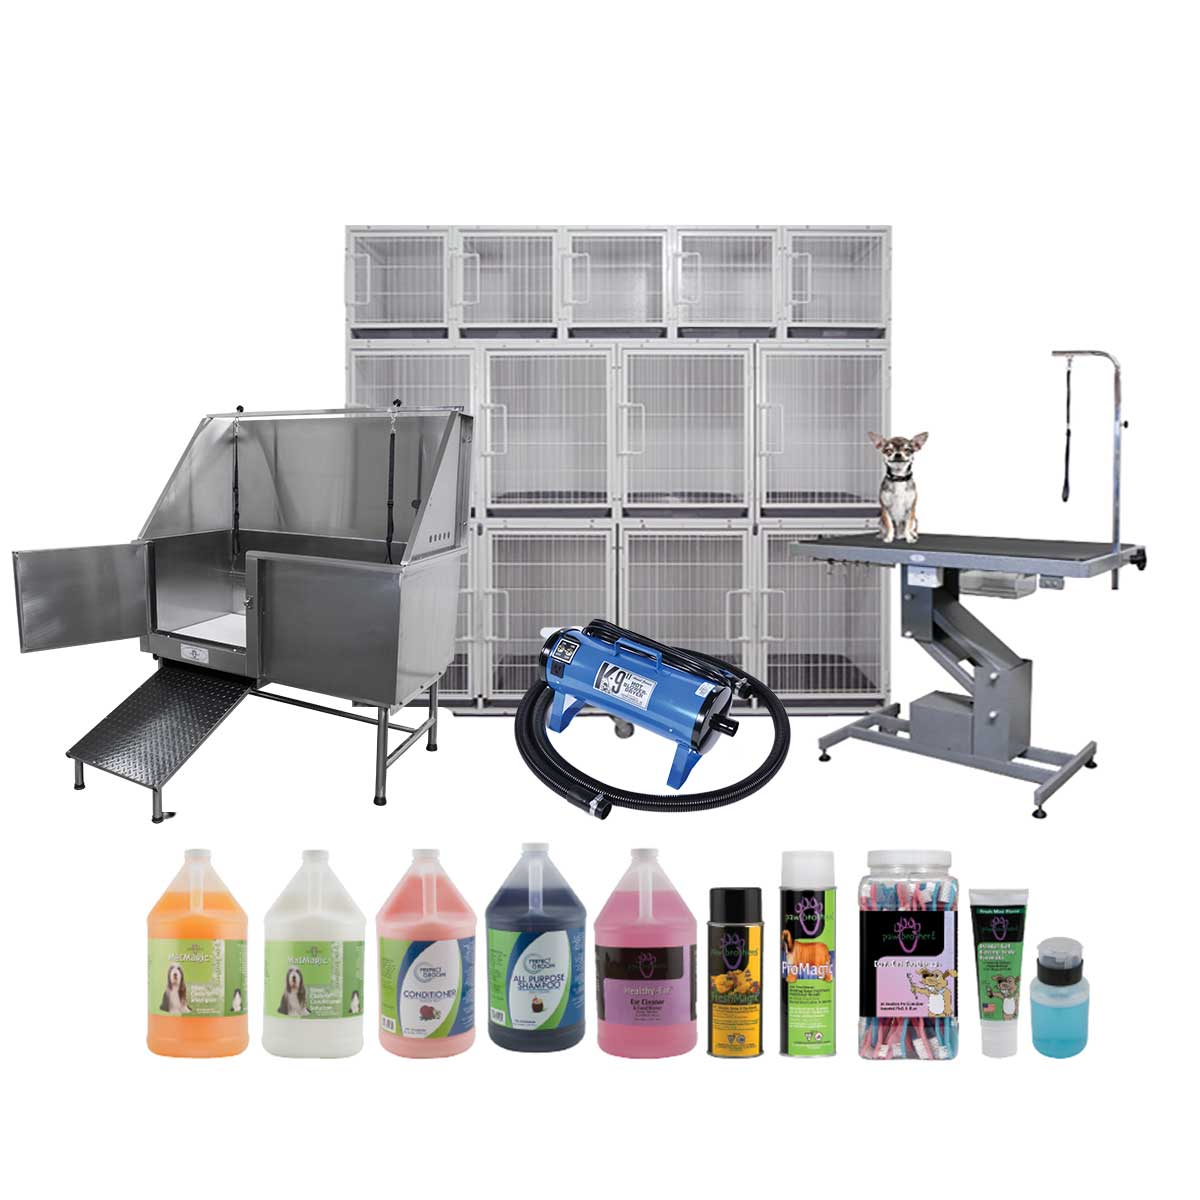 Complete Grooming Kit includes Dryer, Grooming Table, Modular Cages, and all the Grooming Shampoos and Supplies you will need!